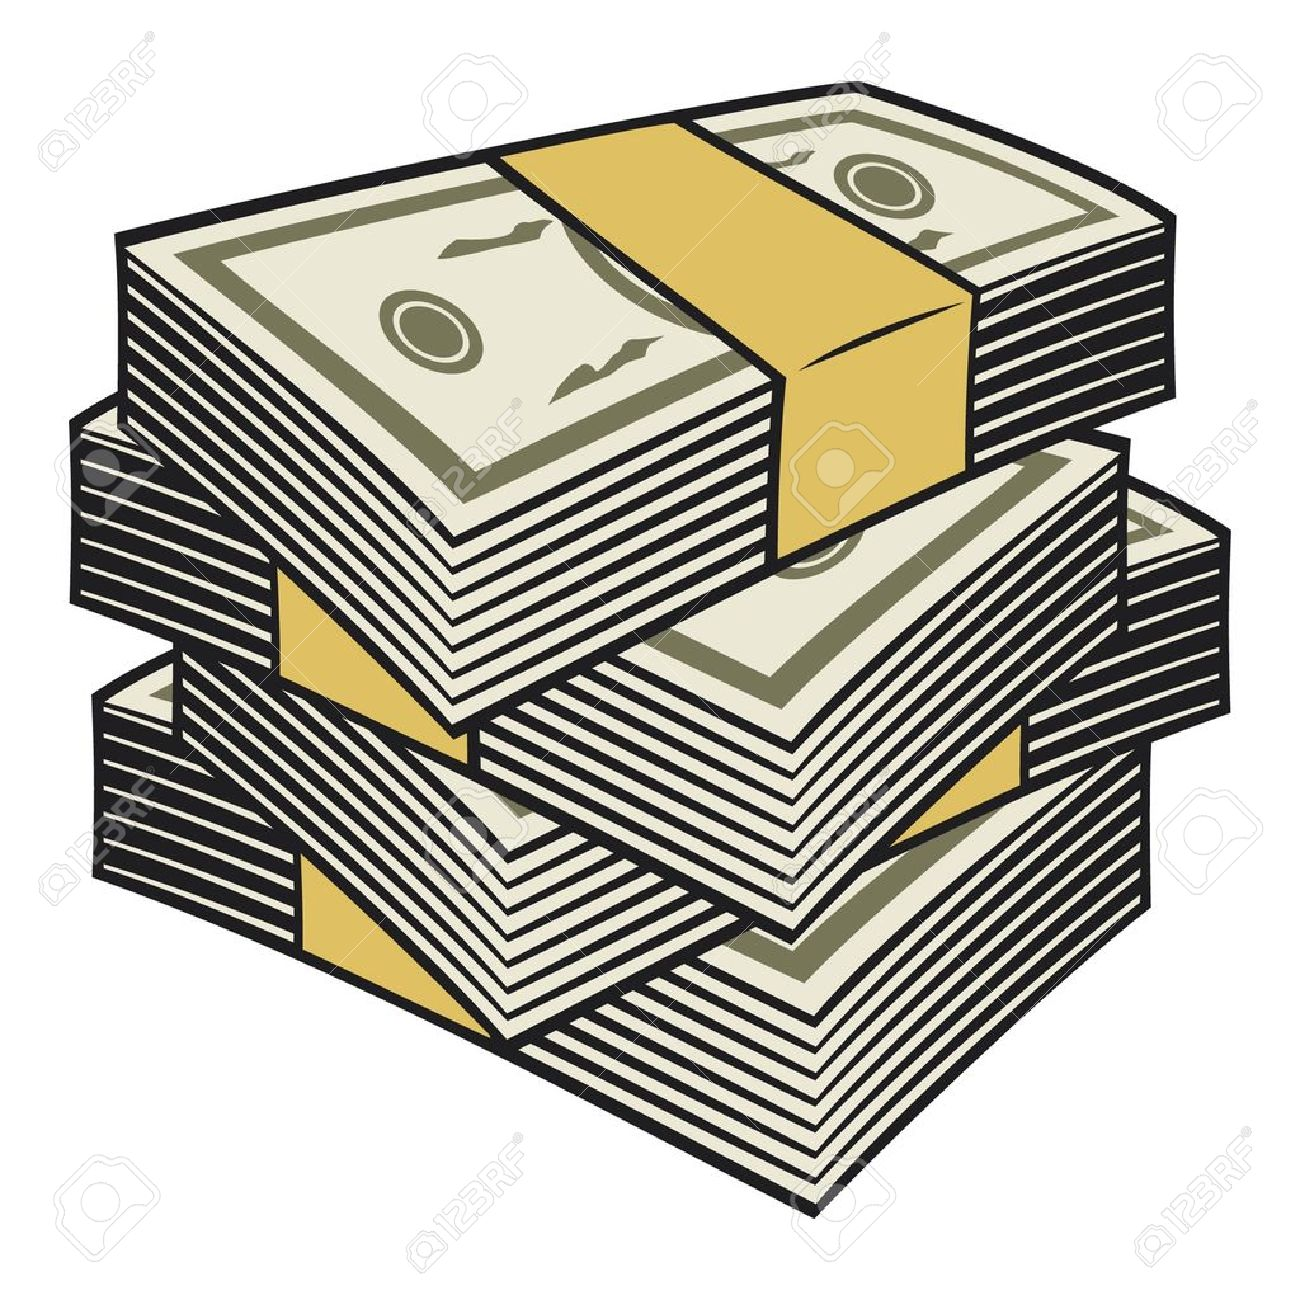 Stack of dollars clipart banner library stock Stack Of Money Clipart | Free download best Stack Of Money ... banner library stock